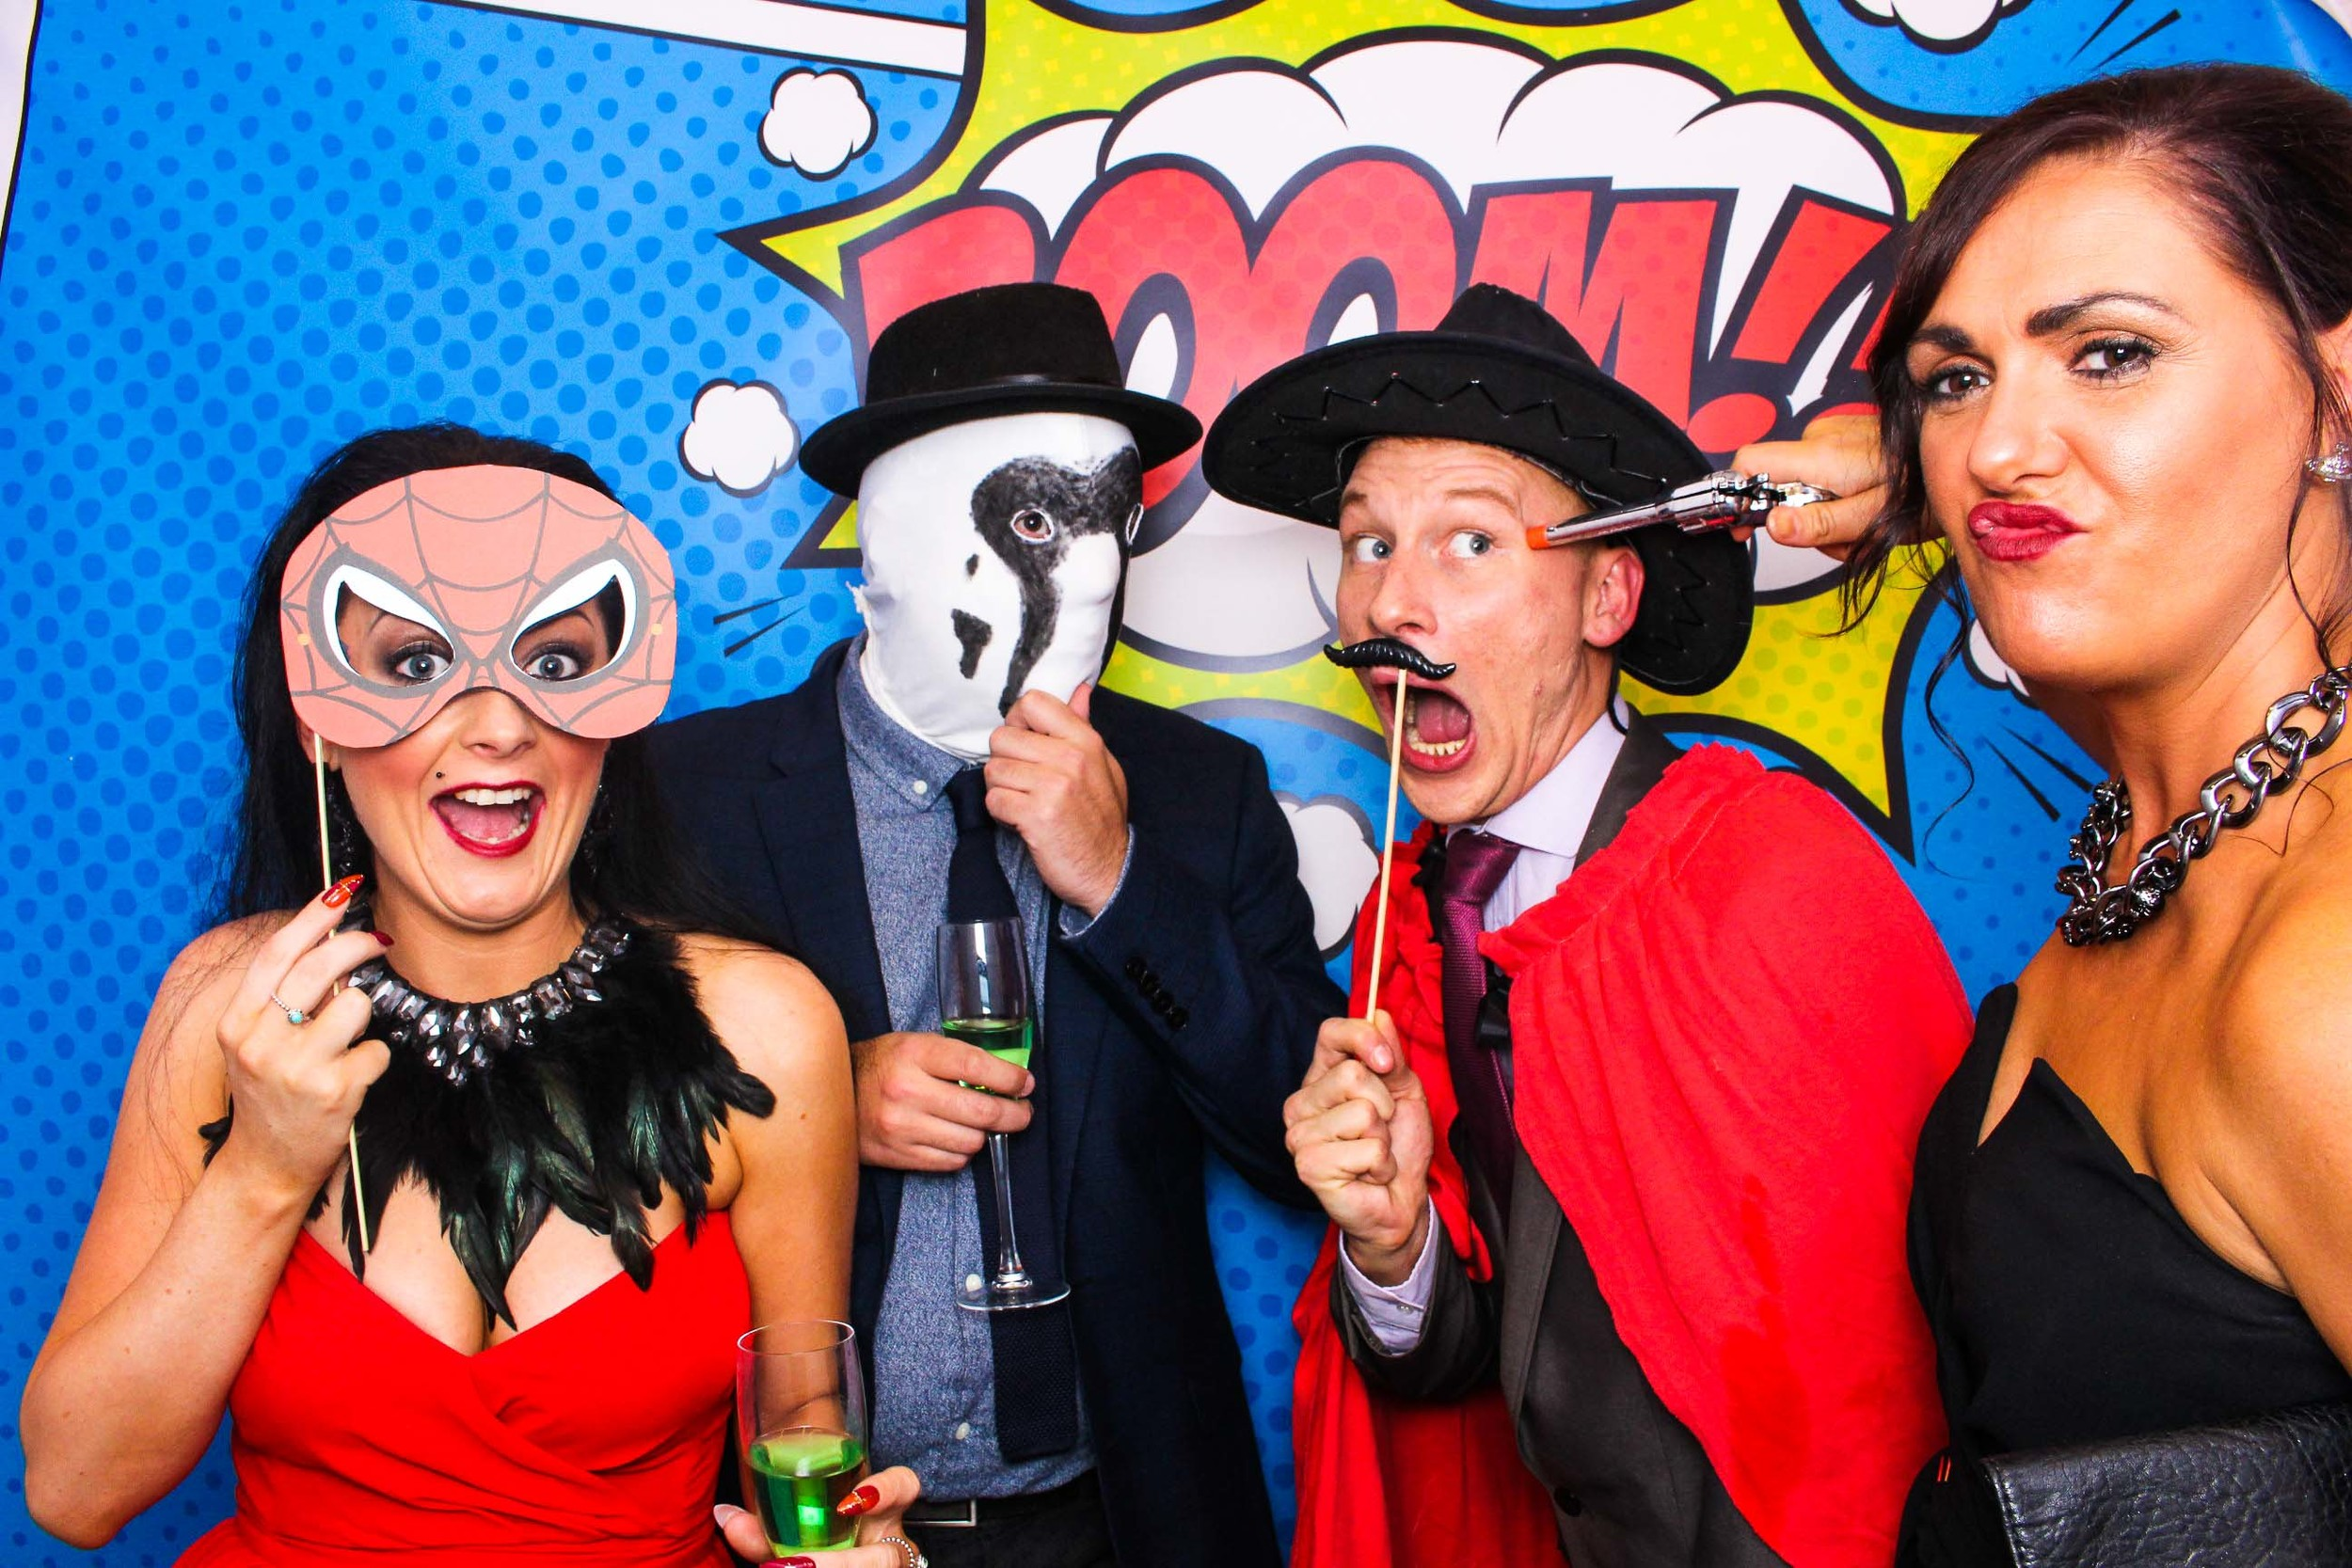 Fotoauto Photo Booth Hire - Shop Direct-39.jpg